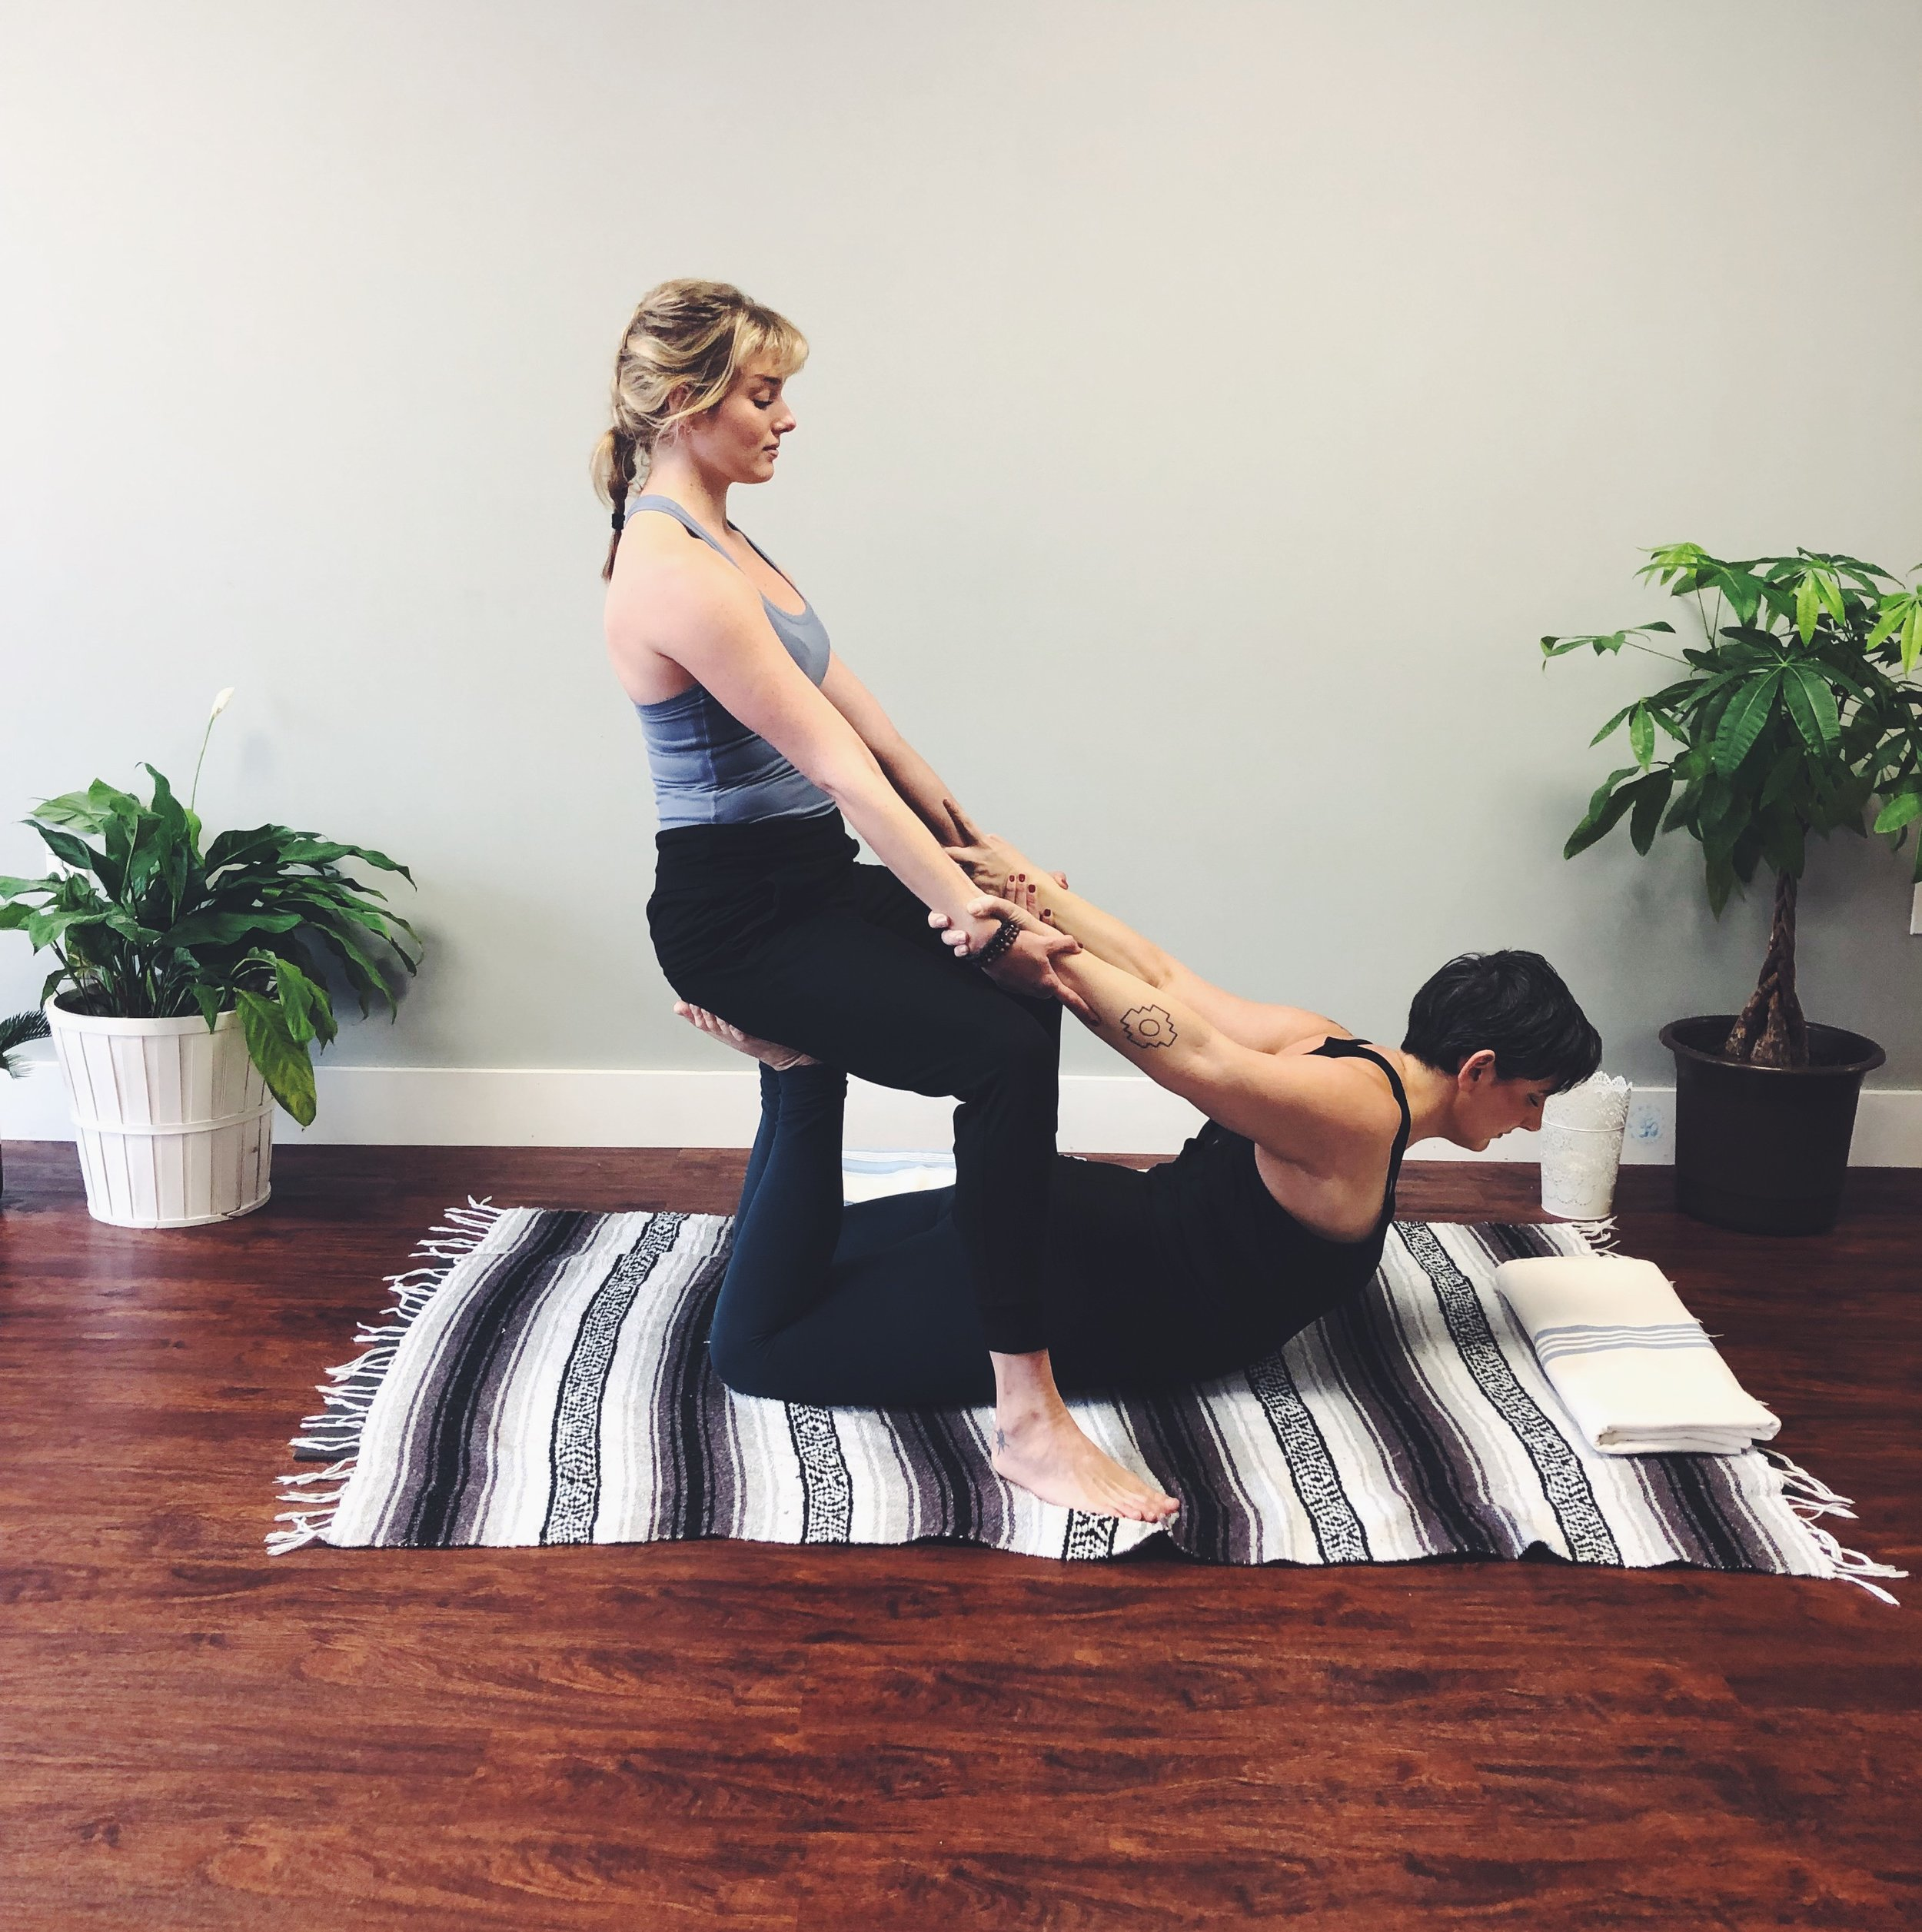 lilli_markle_partner_thai_massage_hamilton_iff